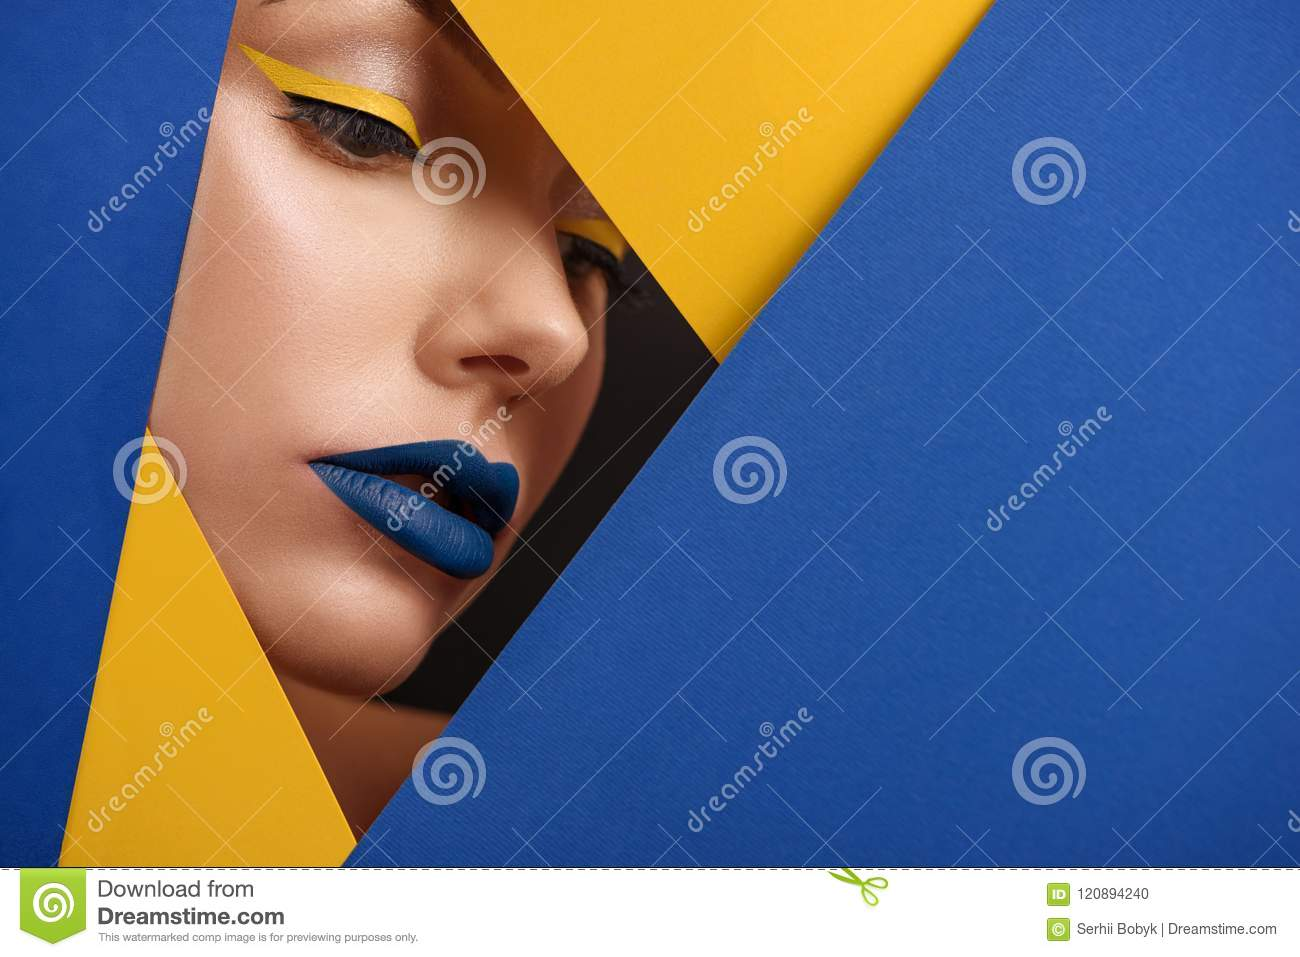 Original beaty close up of girl`s face surronded by blue and yellow carton.